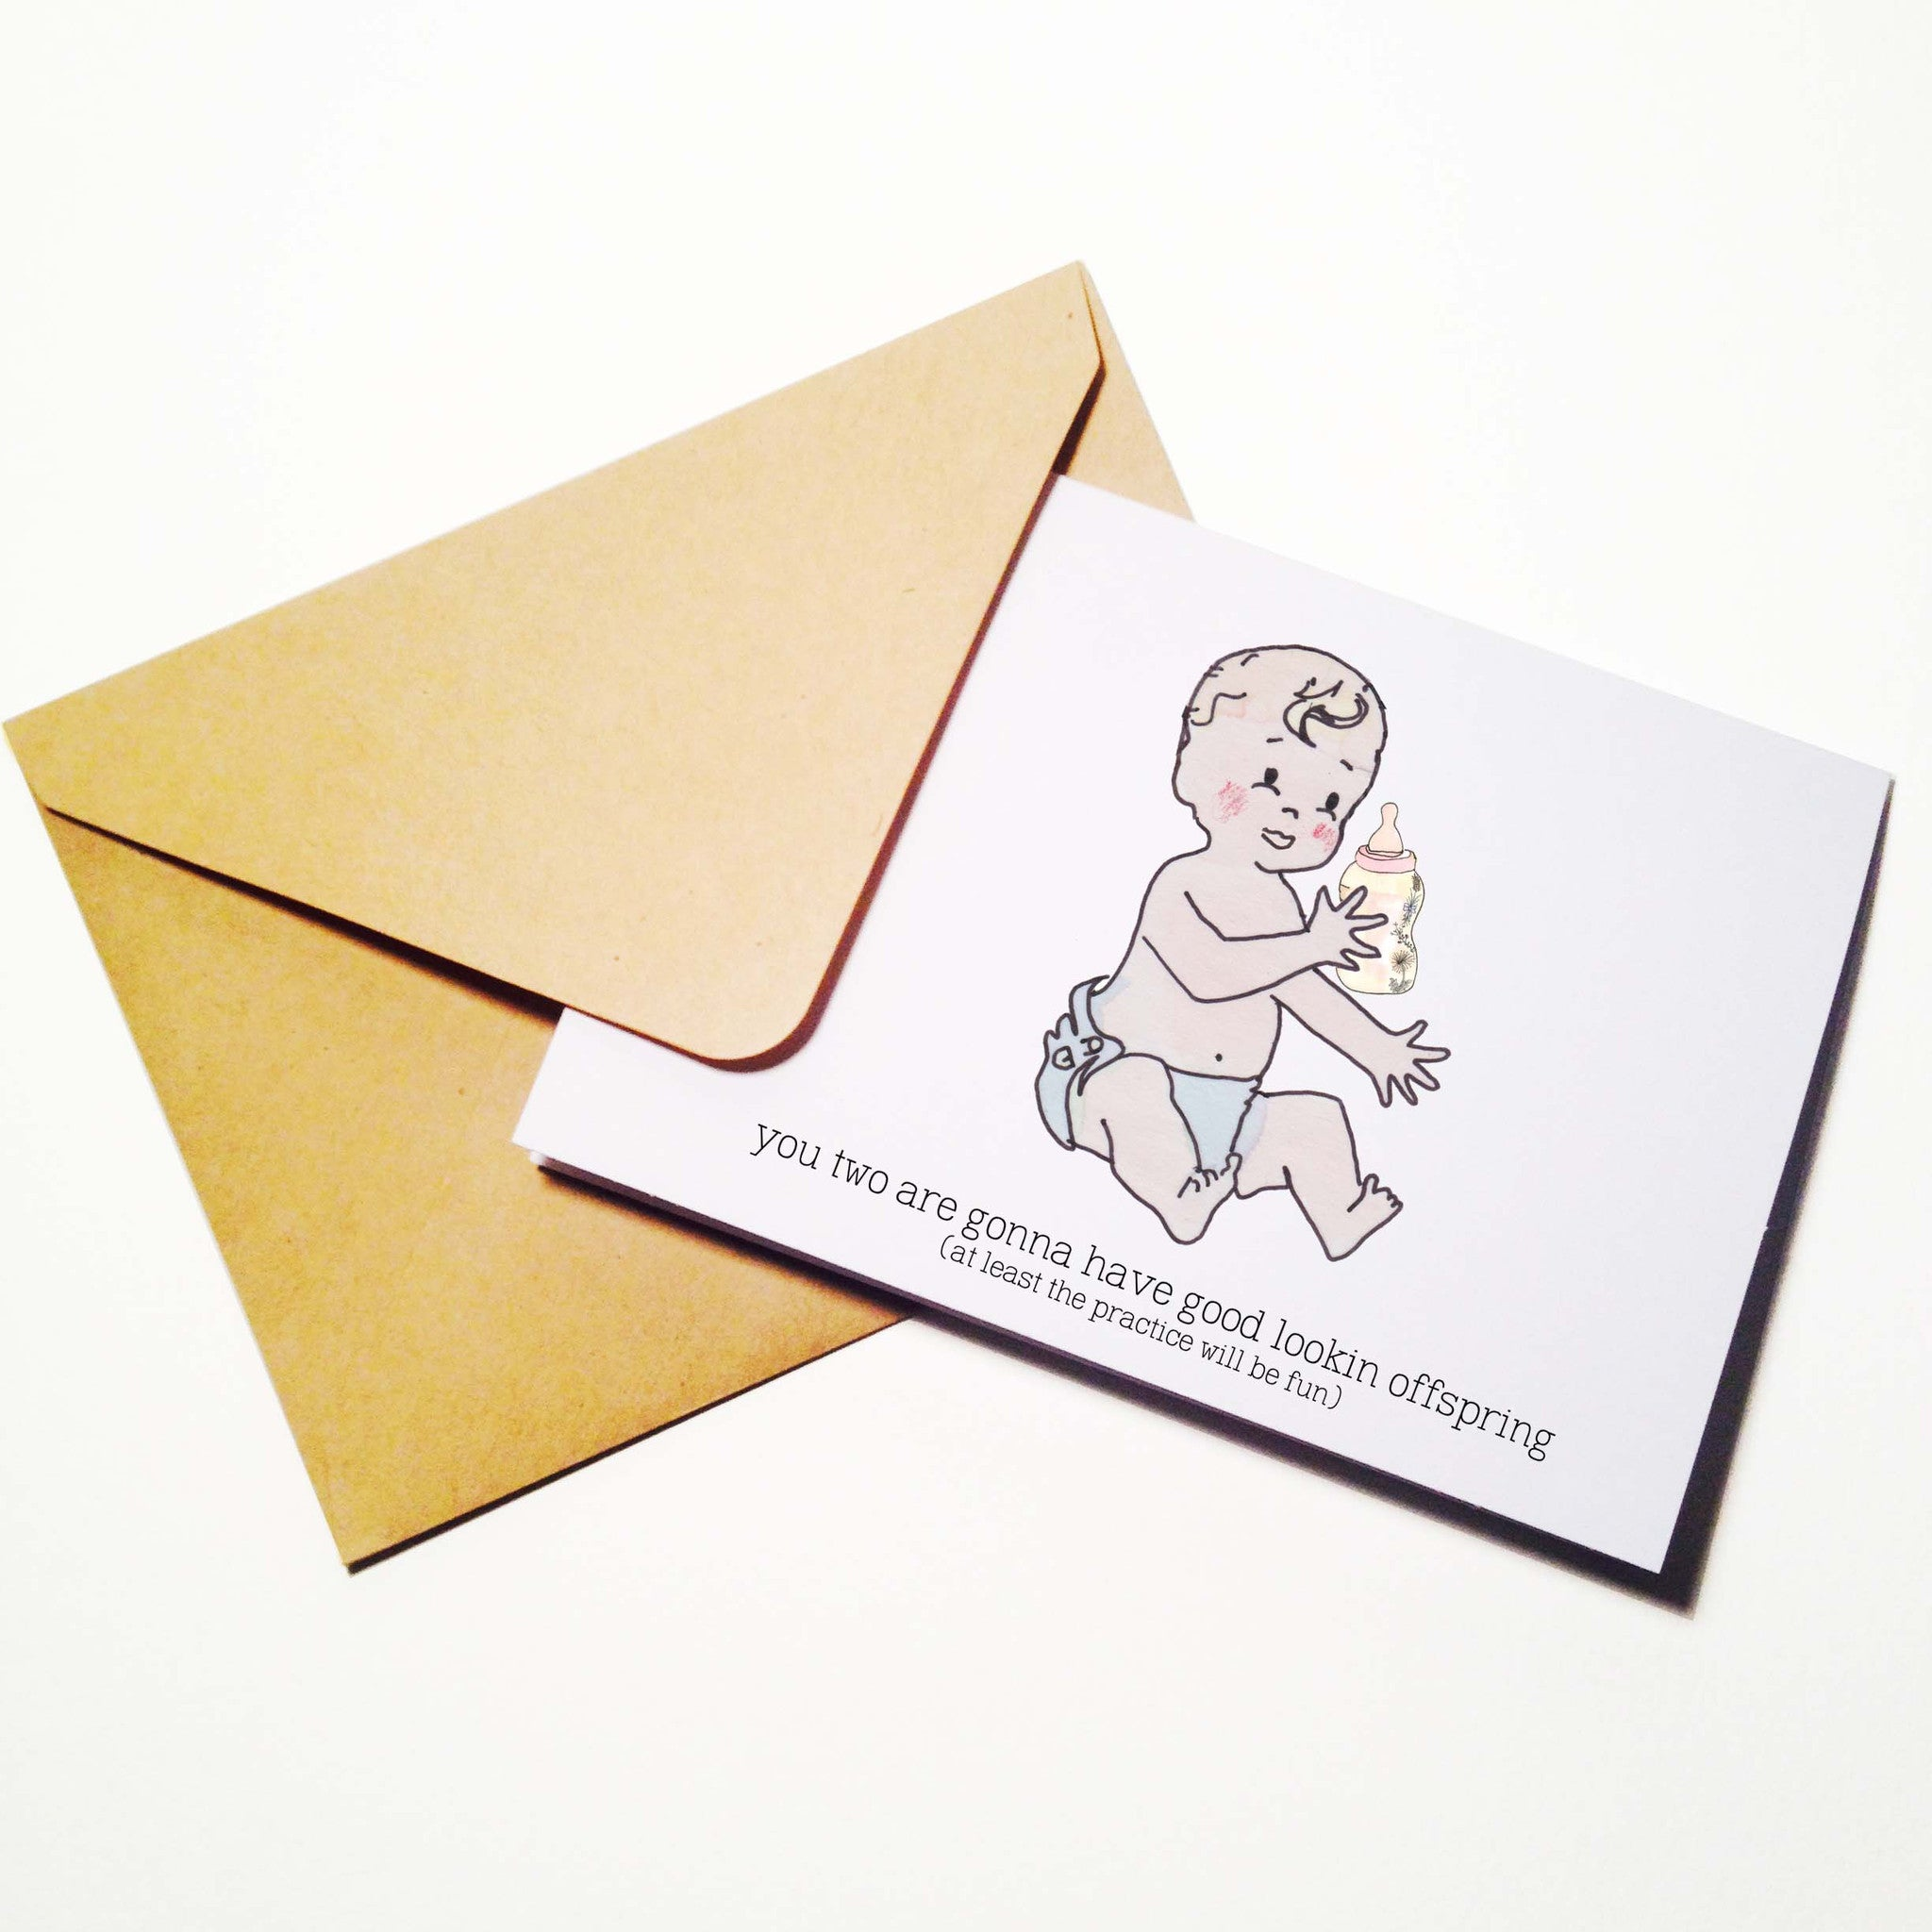 Honeymoon Baby Making Card